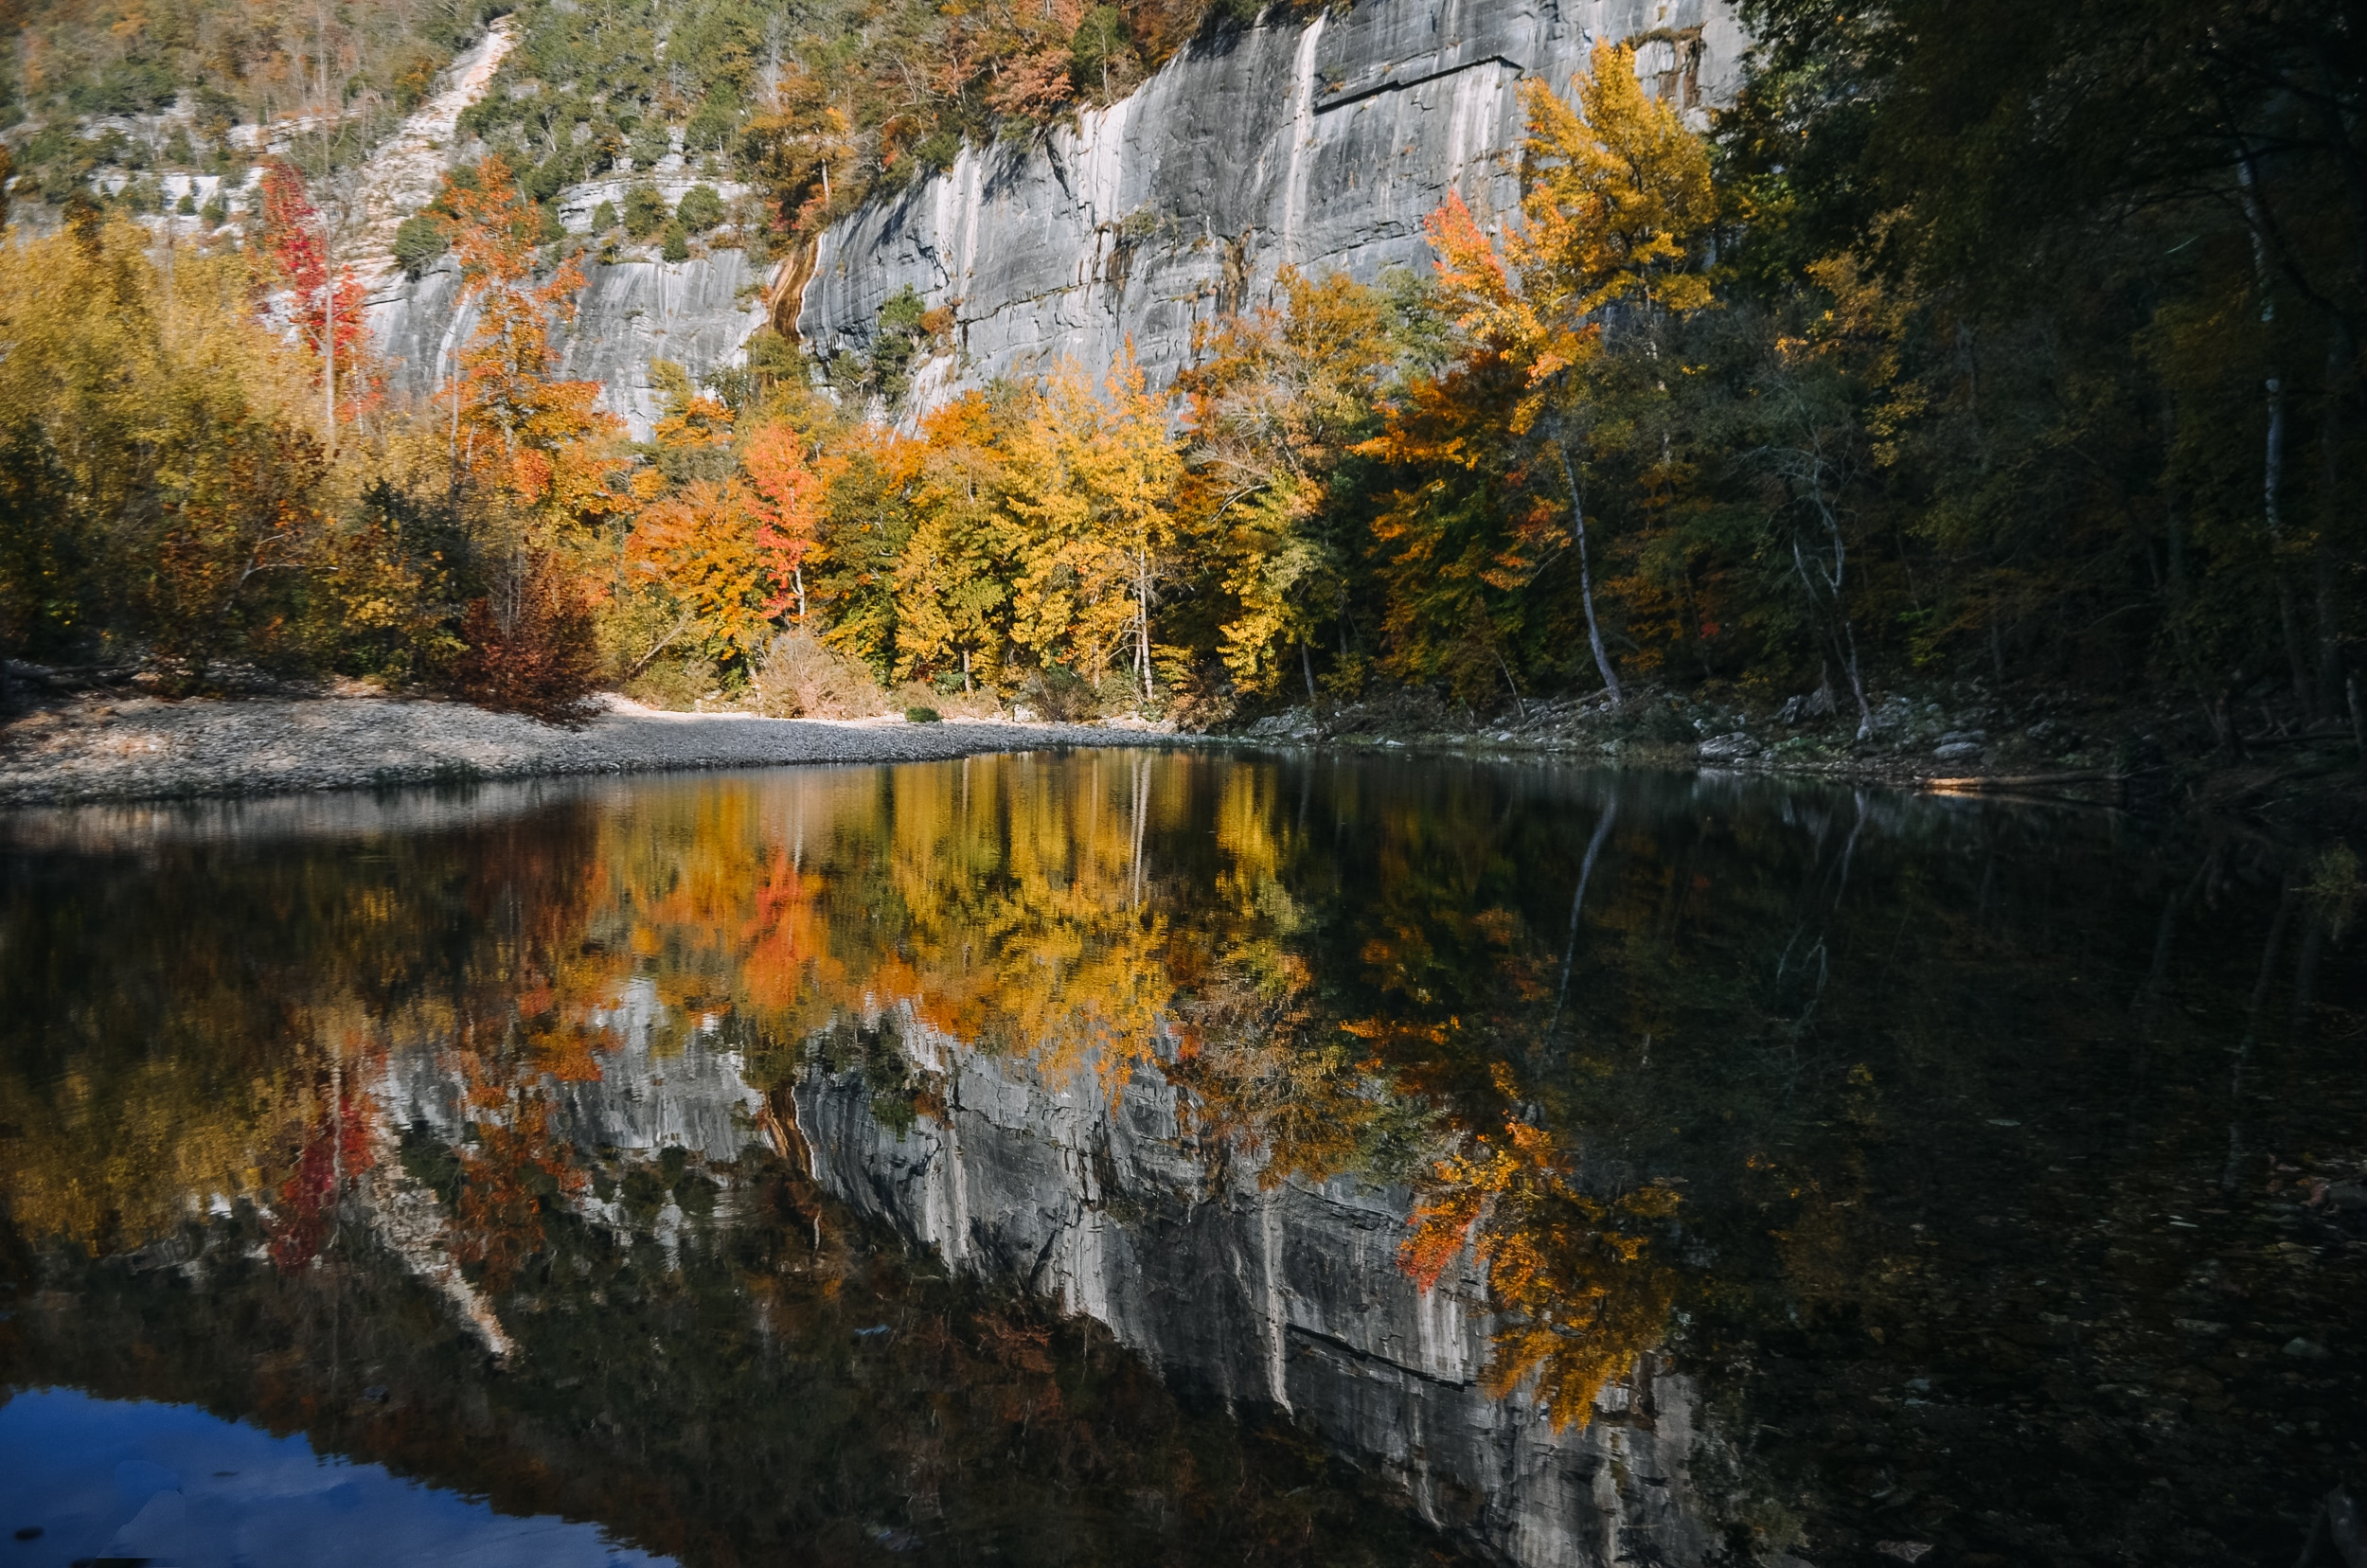 Buffalo River foliage and the reflection in the water